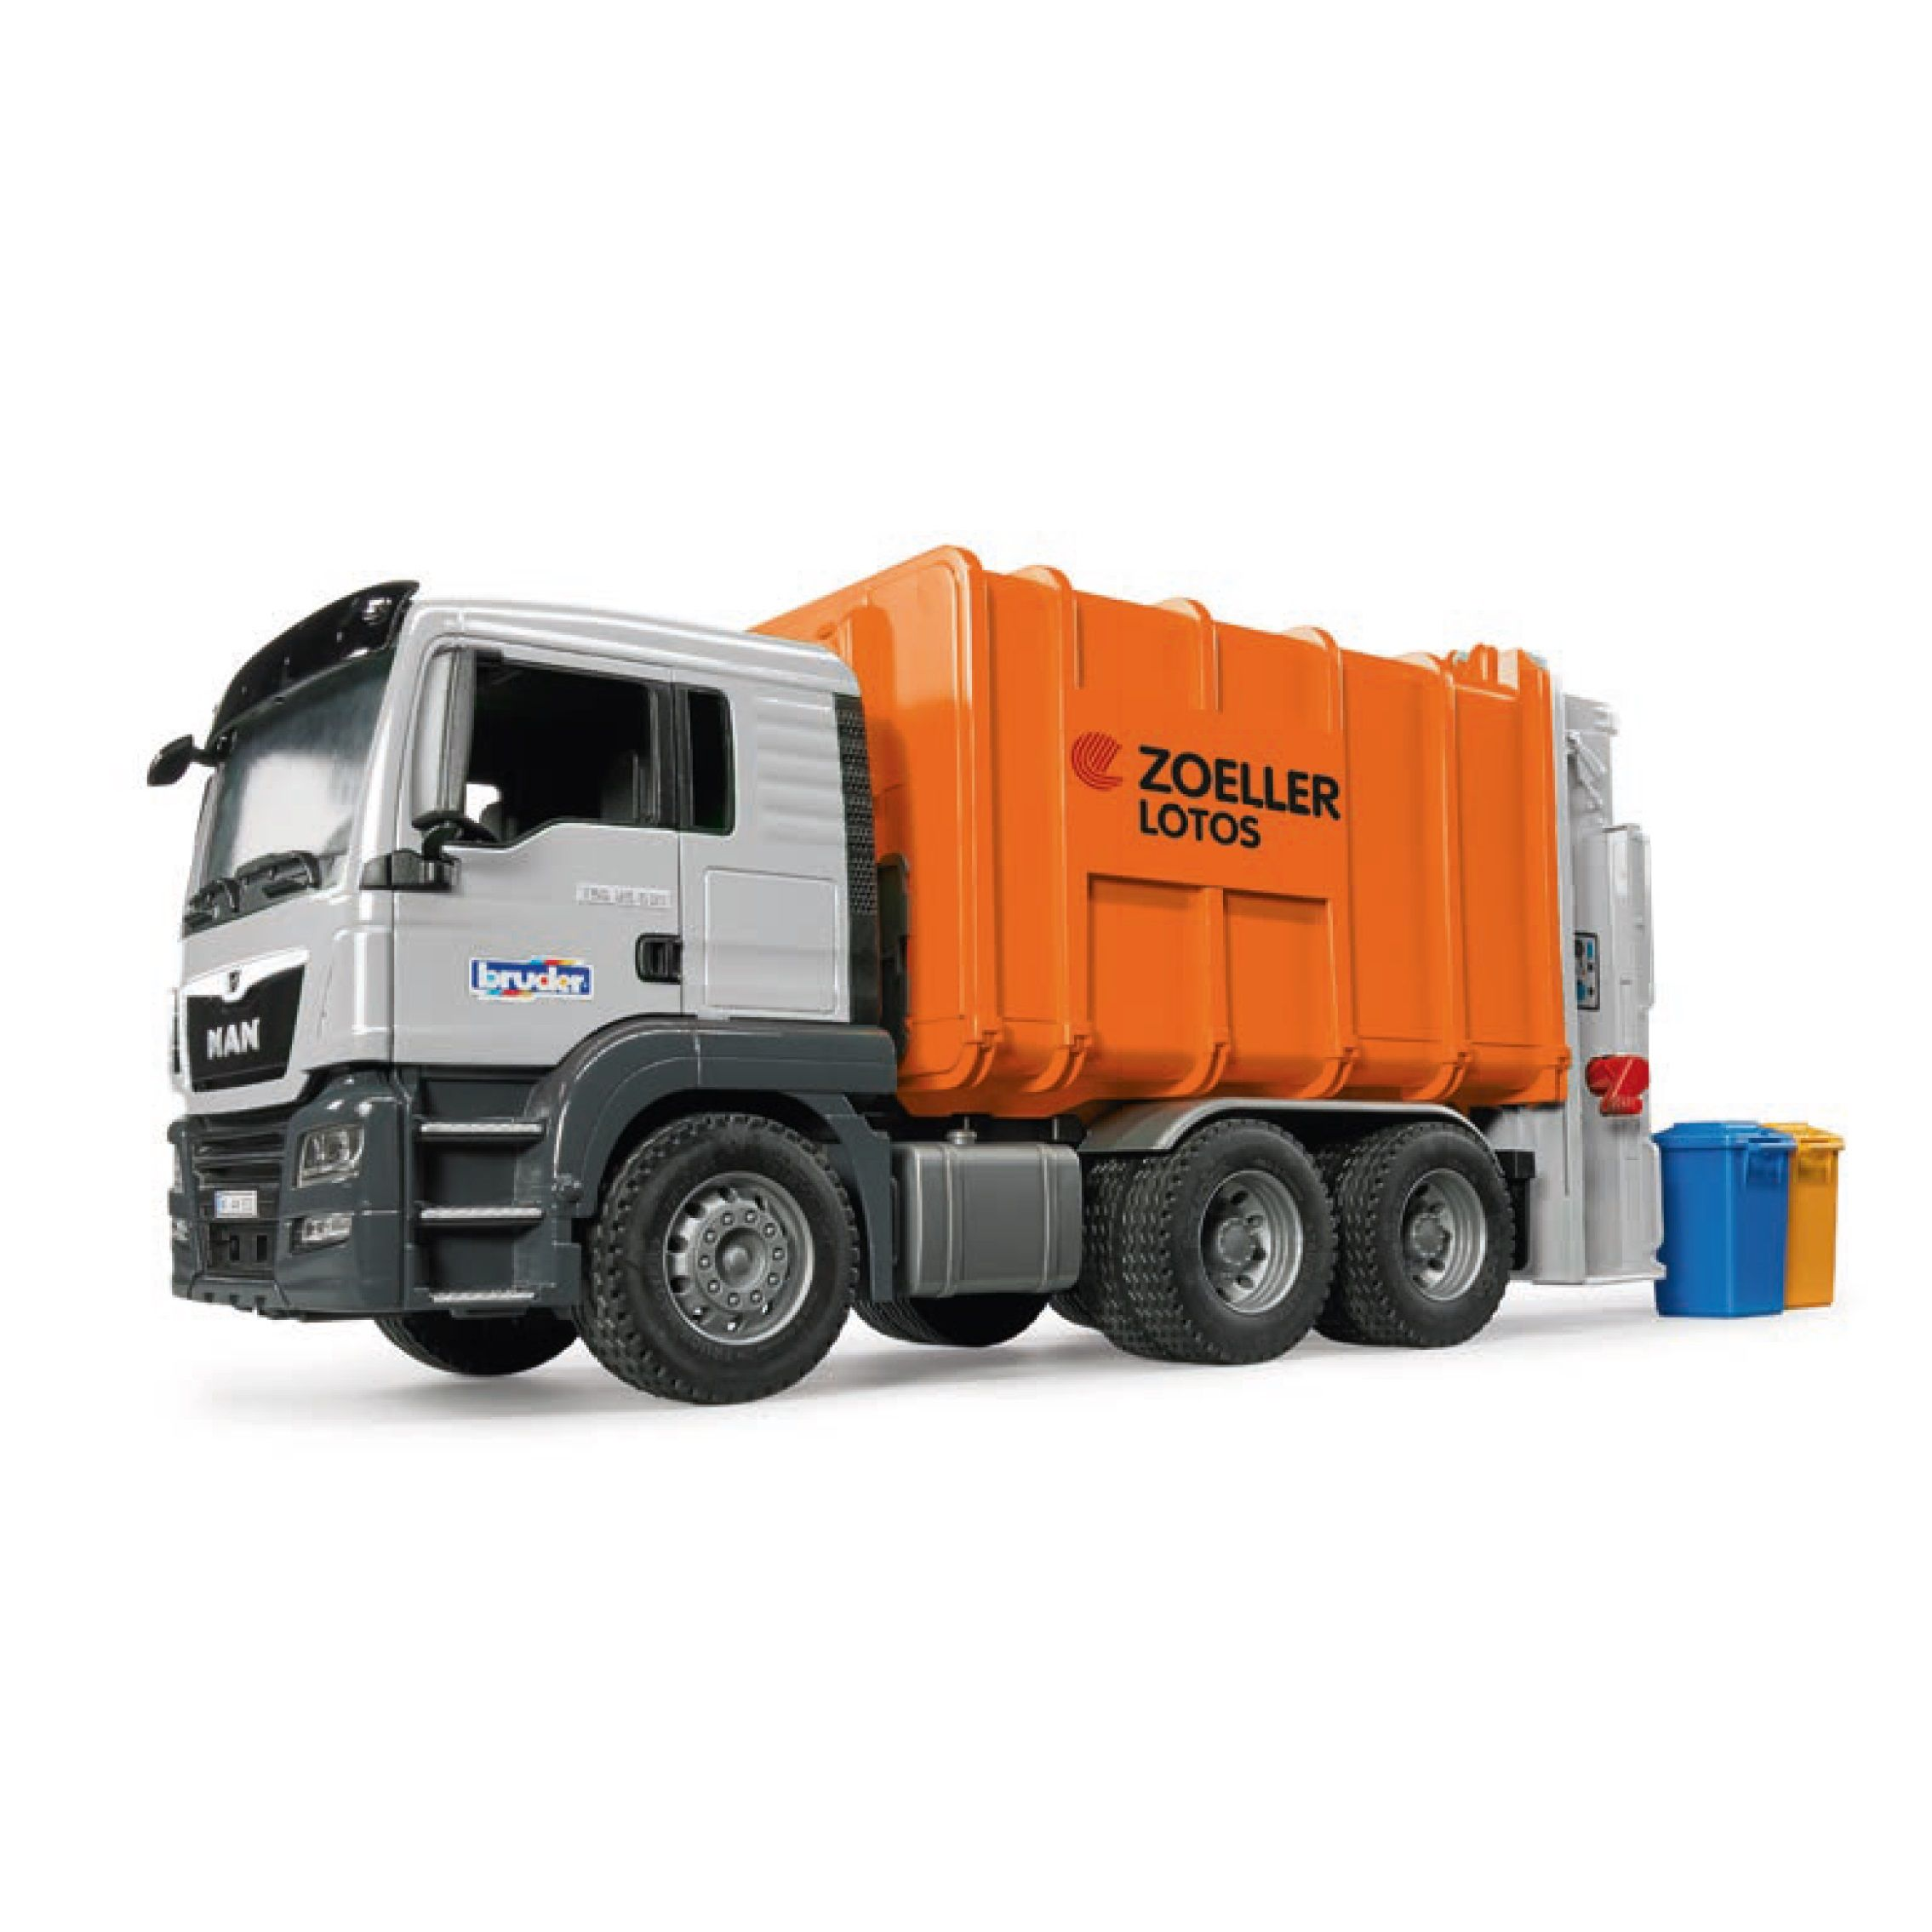 Bruder Toys Man TGS Construction Dump Truck - Vehicle Toy by Bruder Trucks (03765)